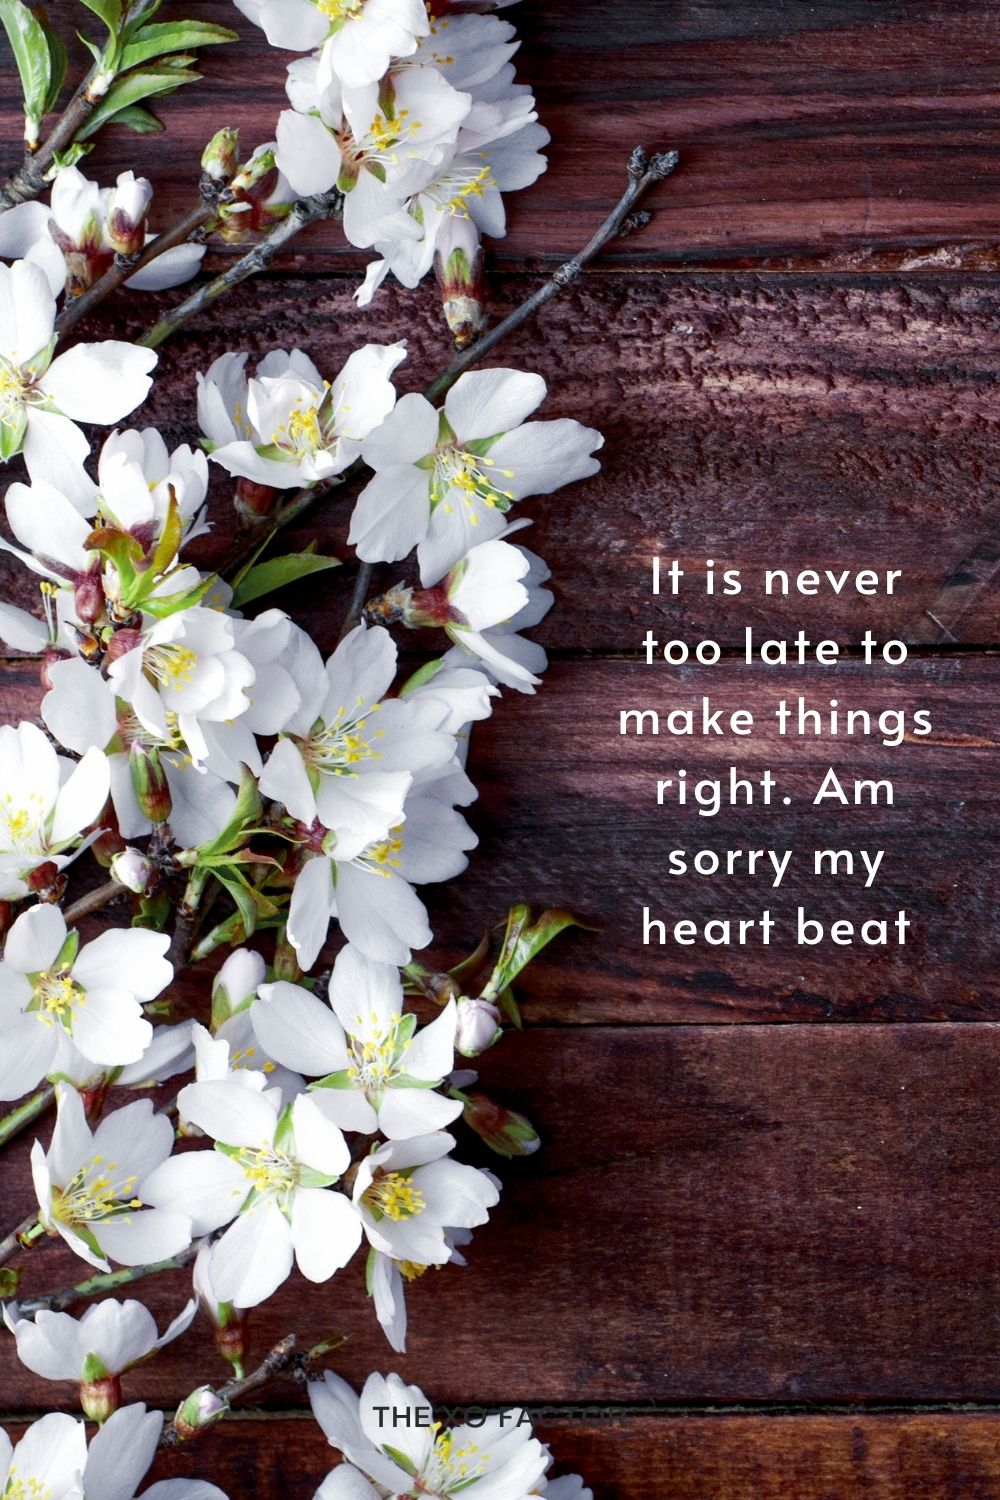 It is never too late to make things right. Am sorry my heart beat